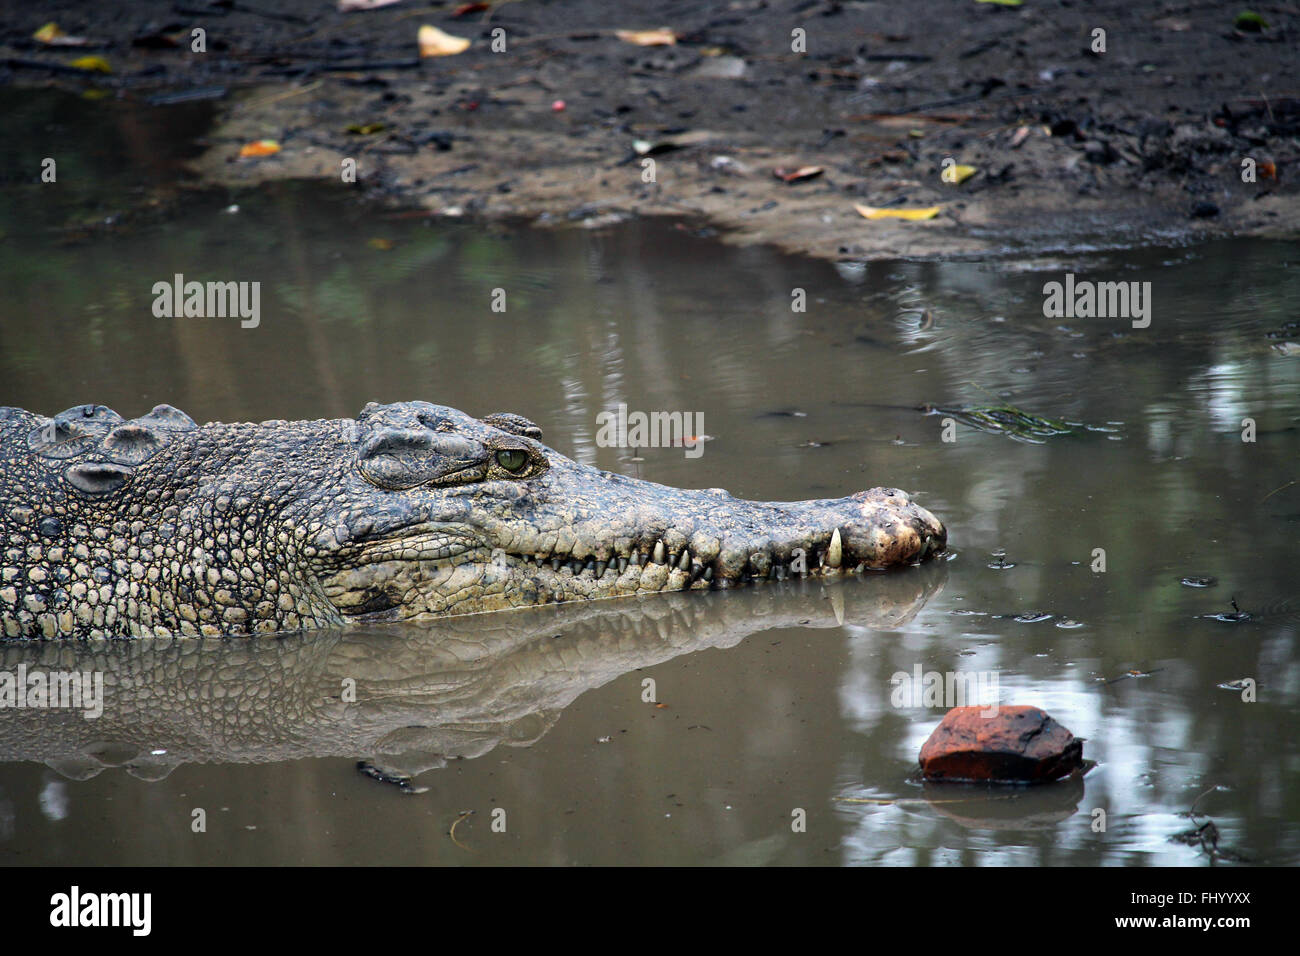 MIRI/MALAYSIA - 24 NOVEMBER 2015: Detail of a crocodile's head coming out of the fresh water in Borneo Stock Photo